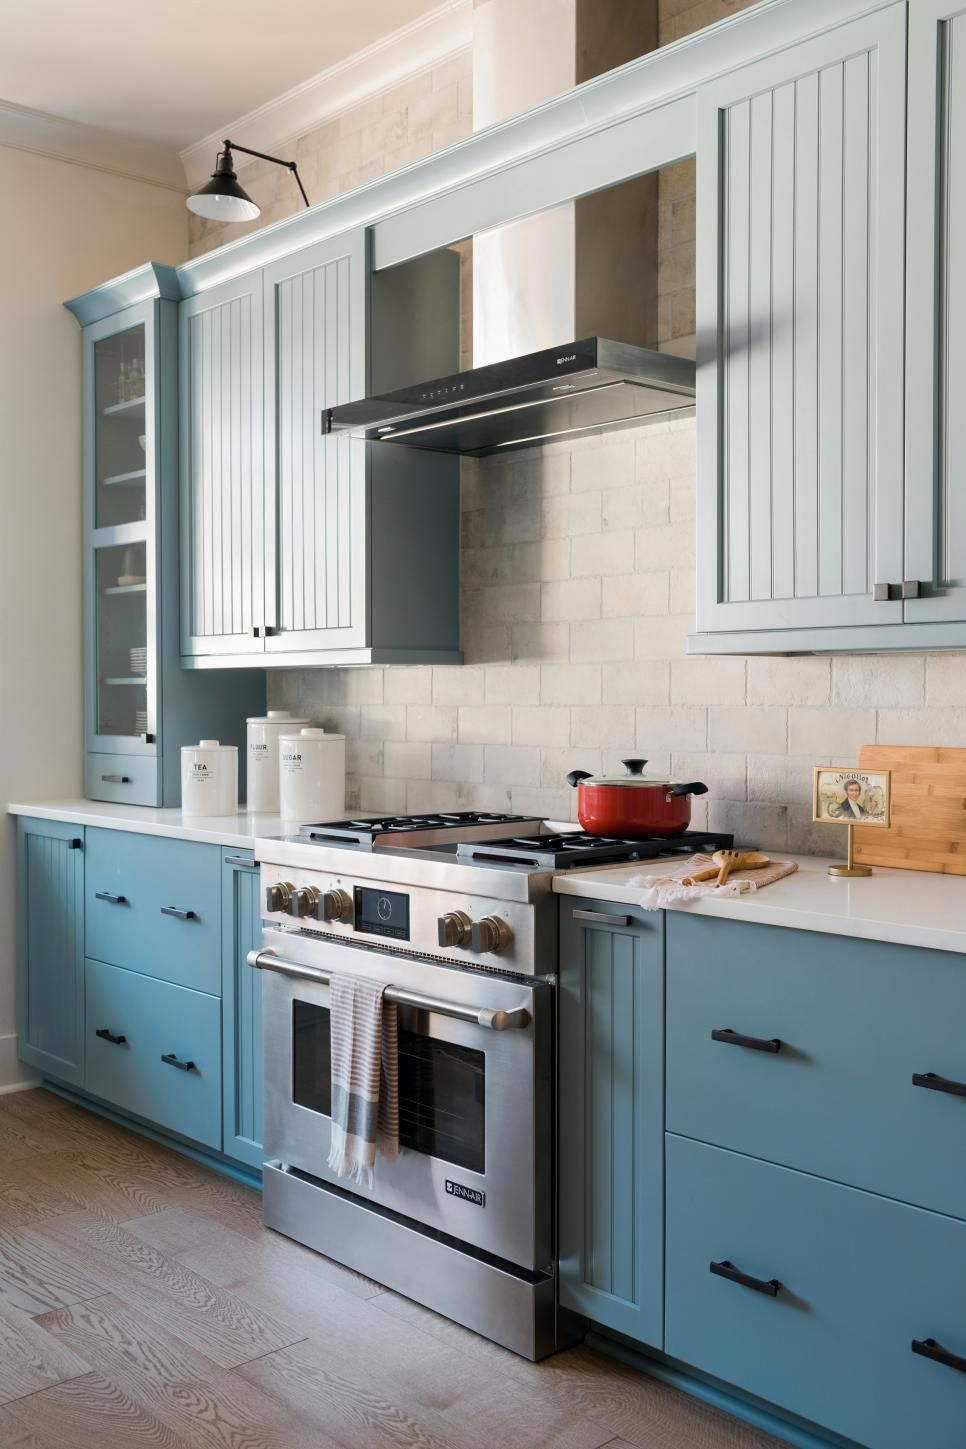 A Detailed Design A Balanced Mix Of Materials And Top Notch Appliances With The Latest In Technology Hgtv Kitchens Open Concept Kitchen Kitchen Cabinet Layout